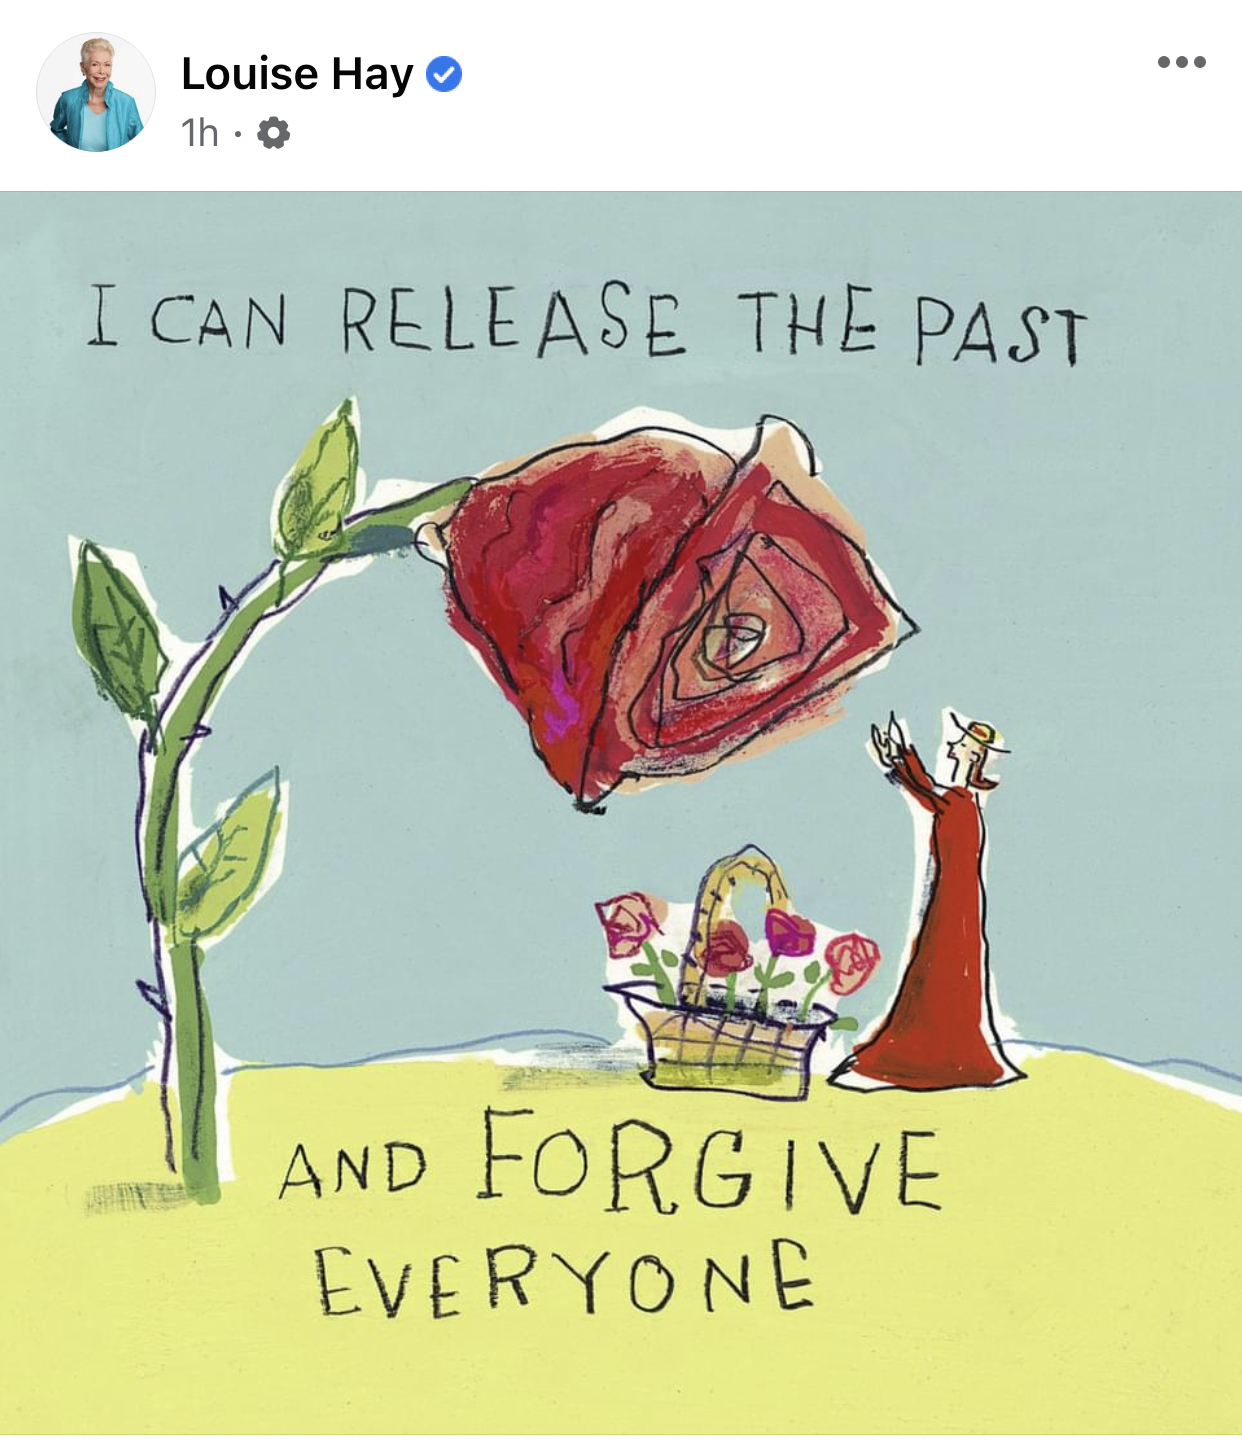 Yes, Dear, I'm still forgiving, blessing and releasing. The forgiven, the blessed and the released are far less intrusive and I pray that they will soon fade away.  I thank you every day for your love and protection.  I love you so much ♥️